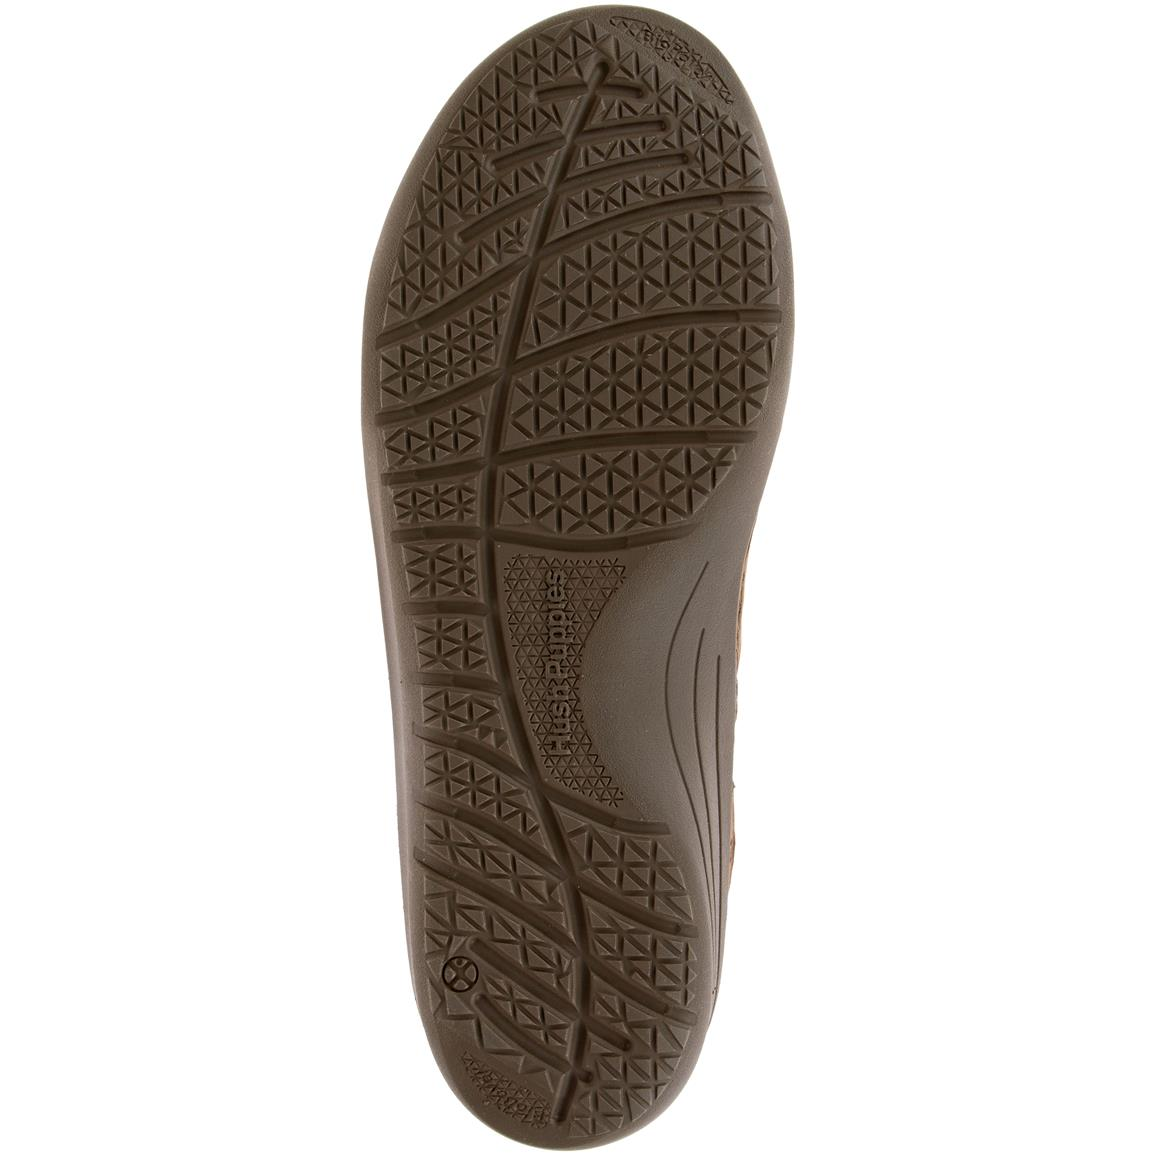 Athletic injected EVA lightweight outsole with EPR compound blending maintains a consistent shape